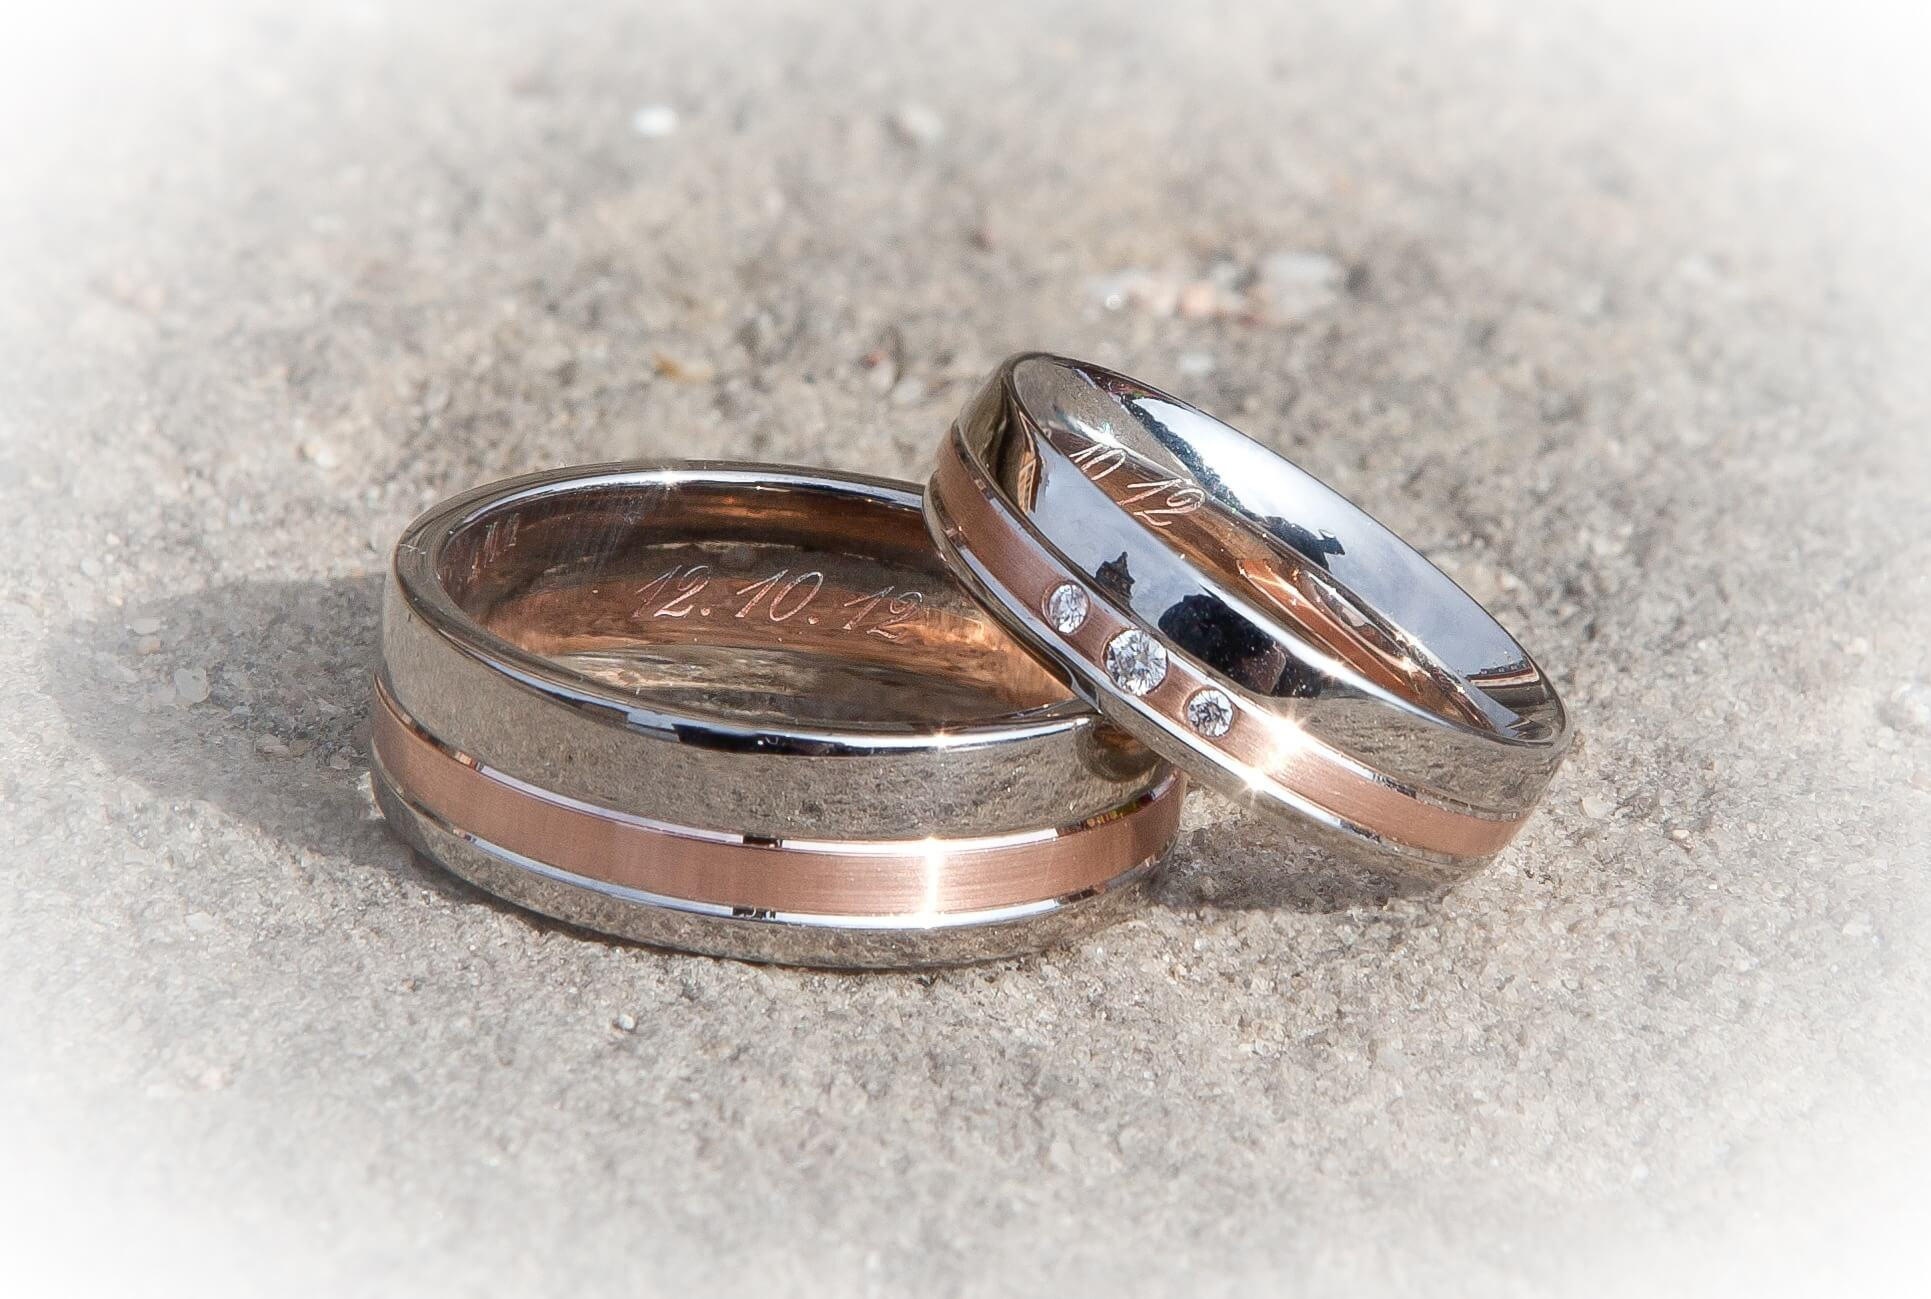 wg bands in solitaire jewelry couples wedding rings with white matching gold gifts for nl couple anniversary diamond